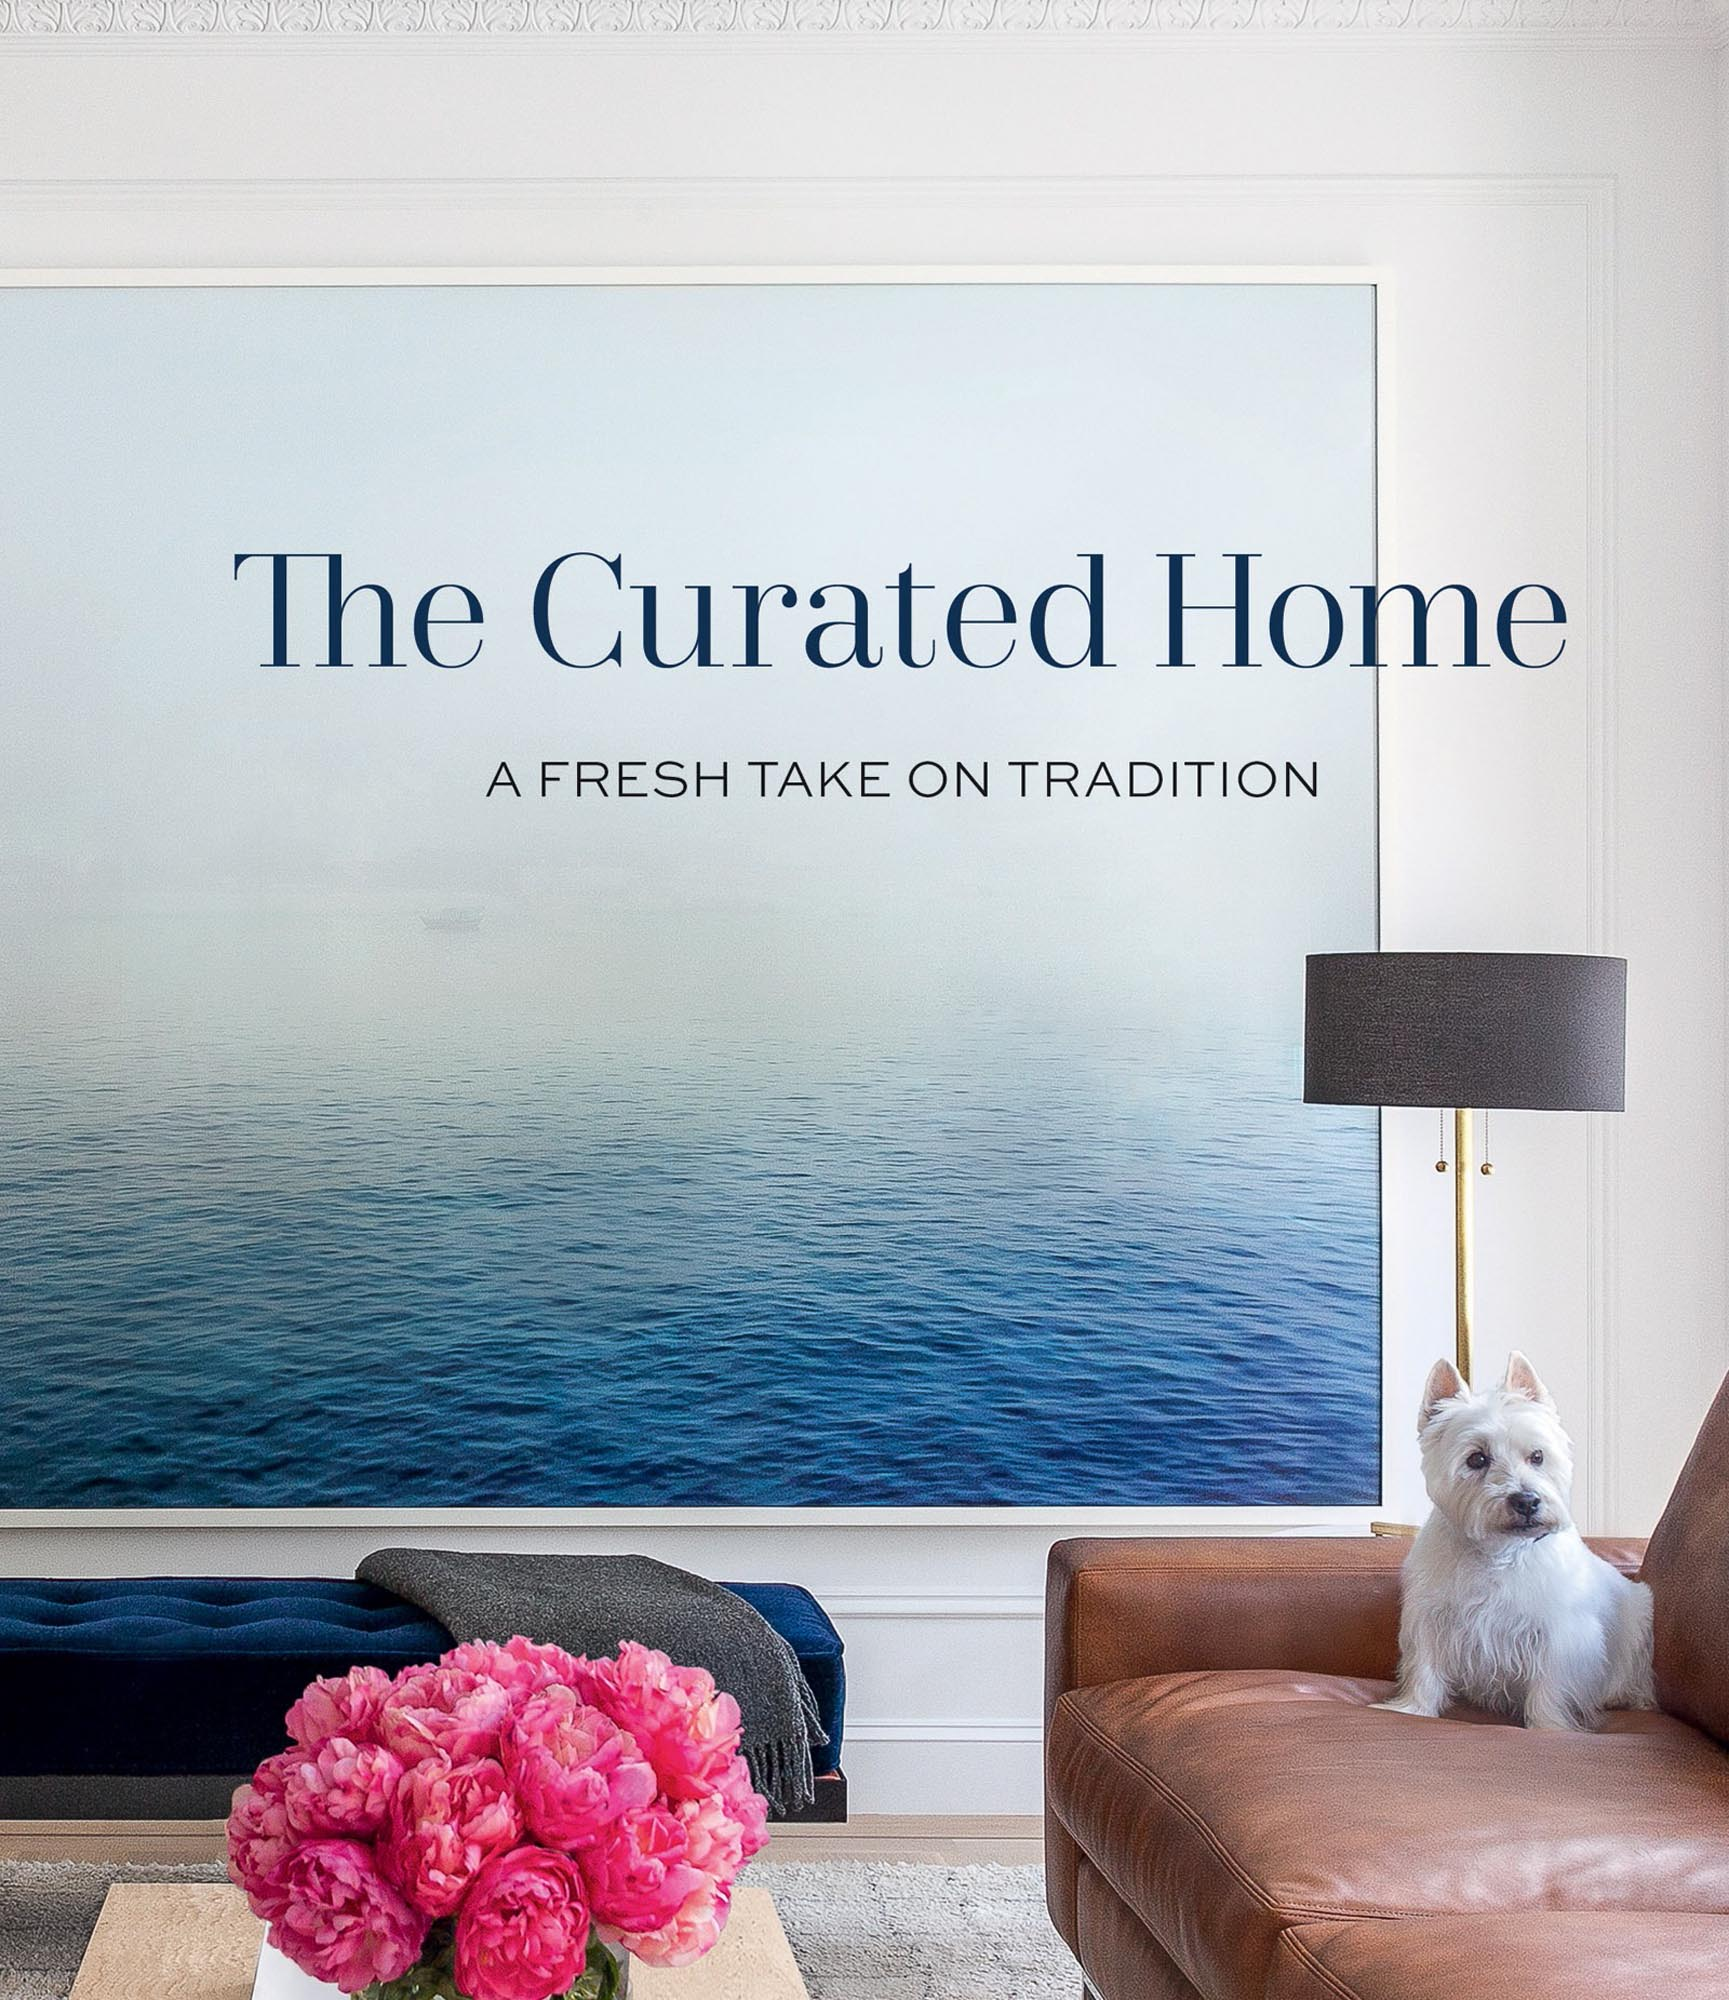 the curated home book